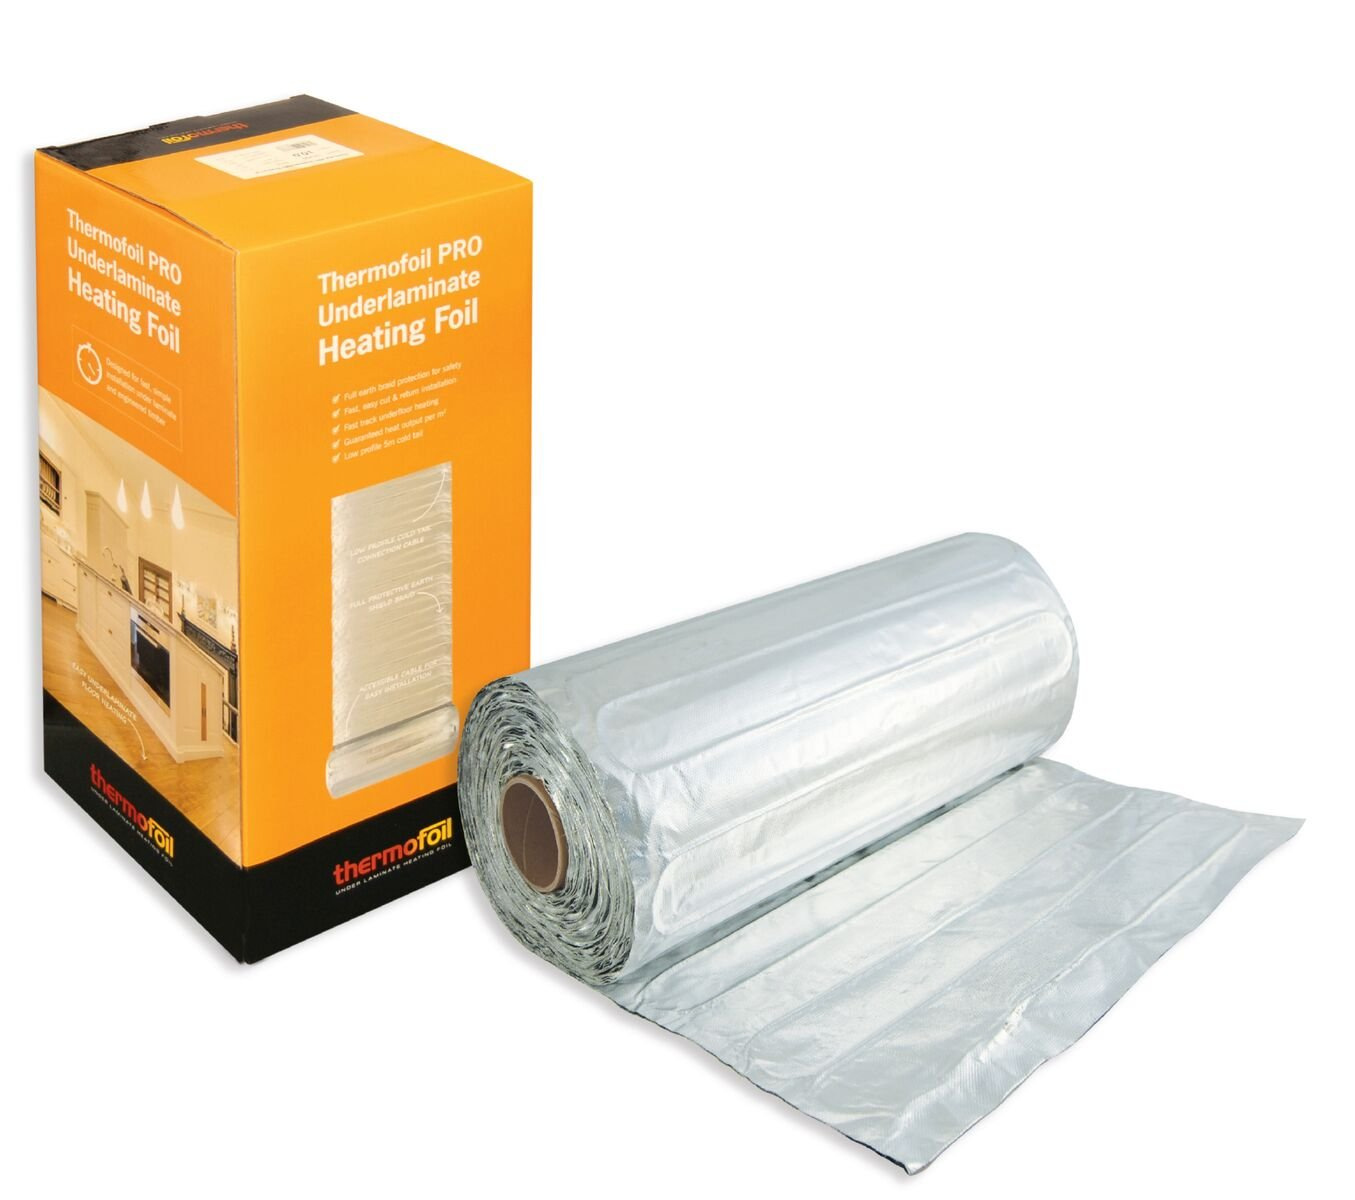 Thermofoil PRO 140W /m2 Electric Foil Underfloor Heating Mat - for Laminate and Timber Flooring (1.0m2) Thermogroup UK 121402